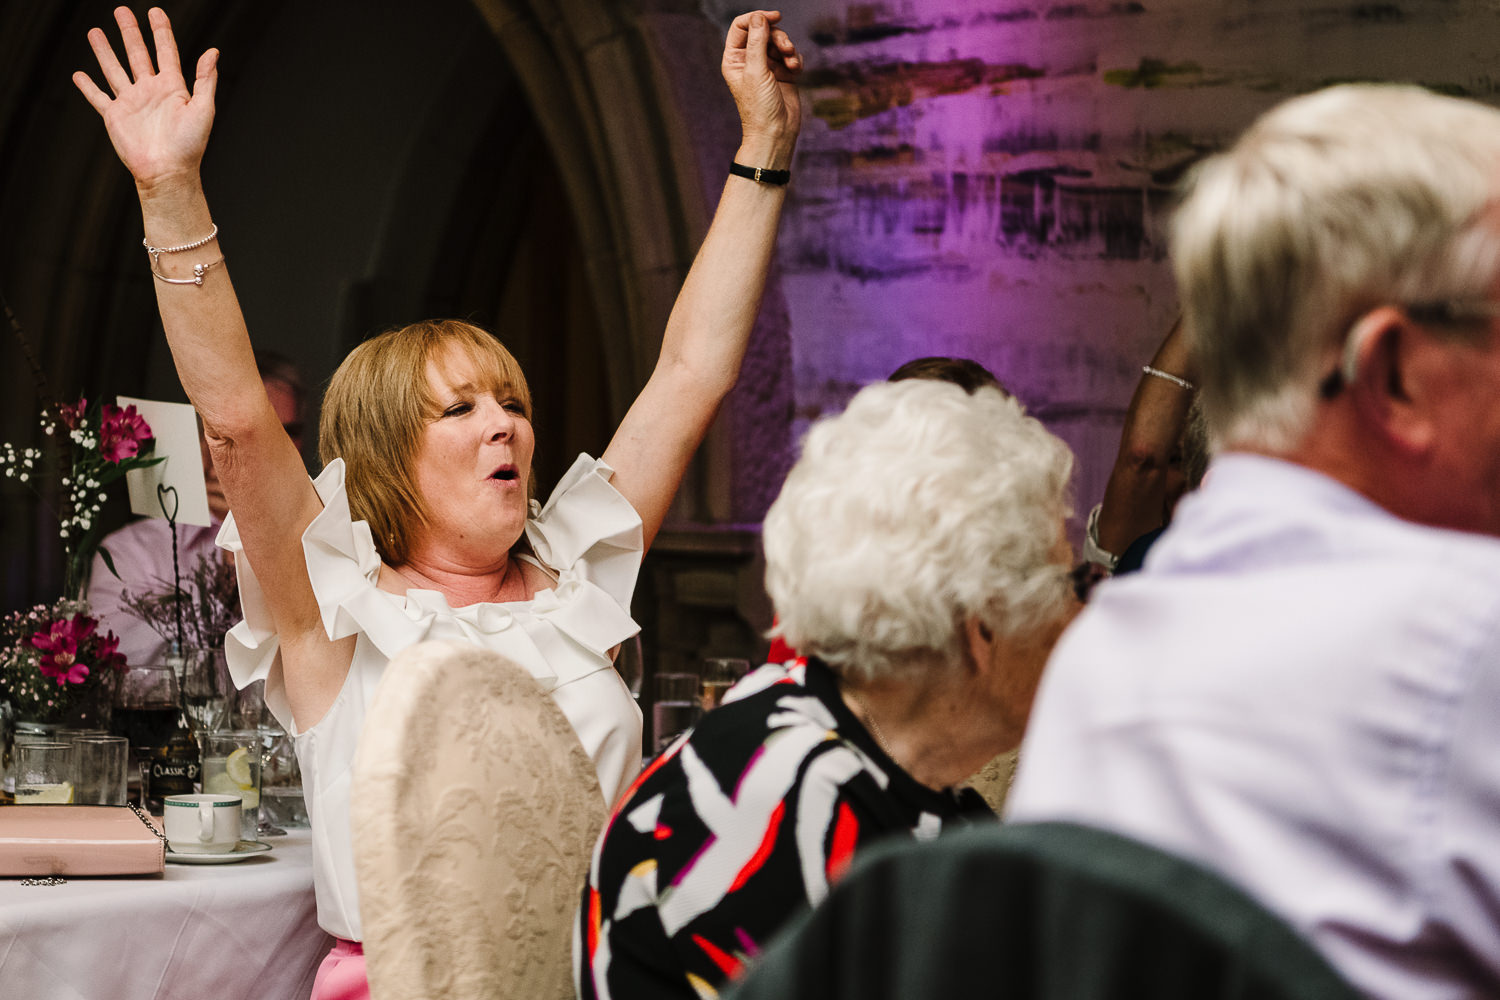 Guest with arm in the air shouting